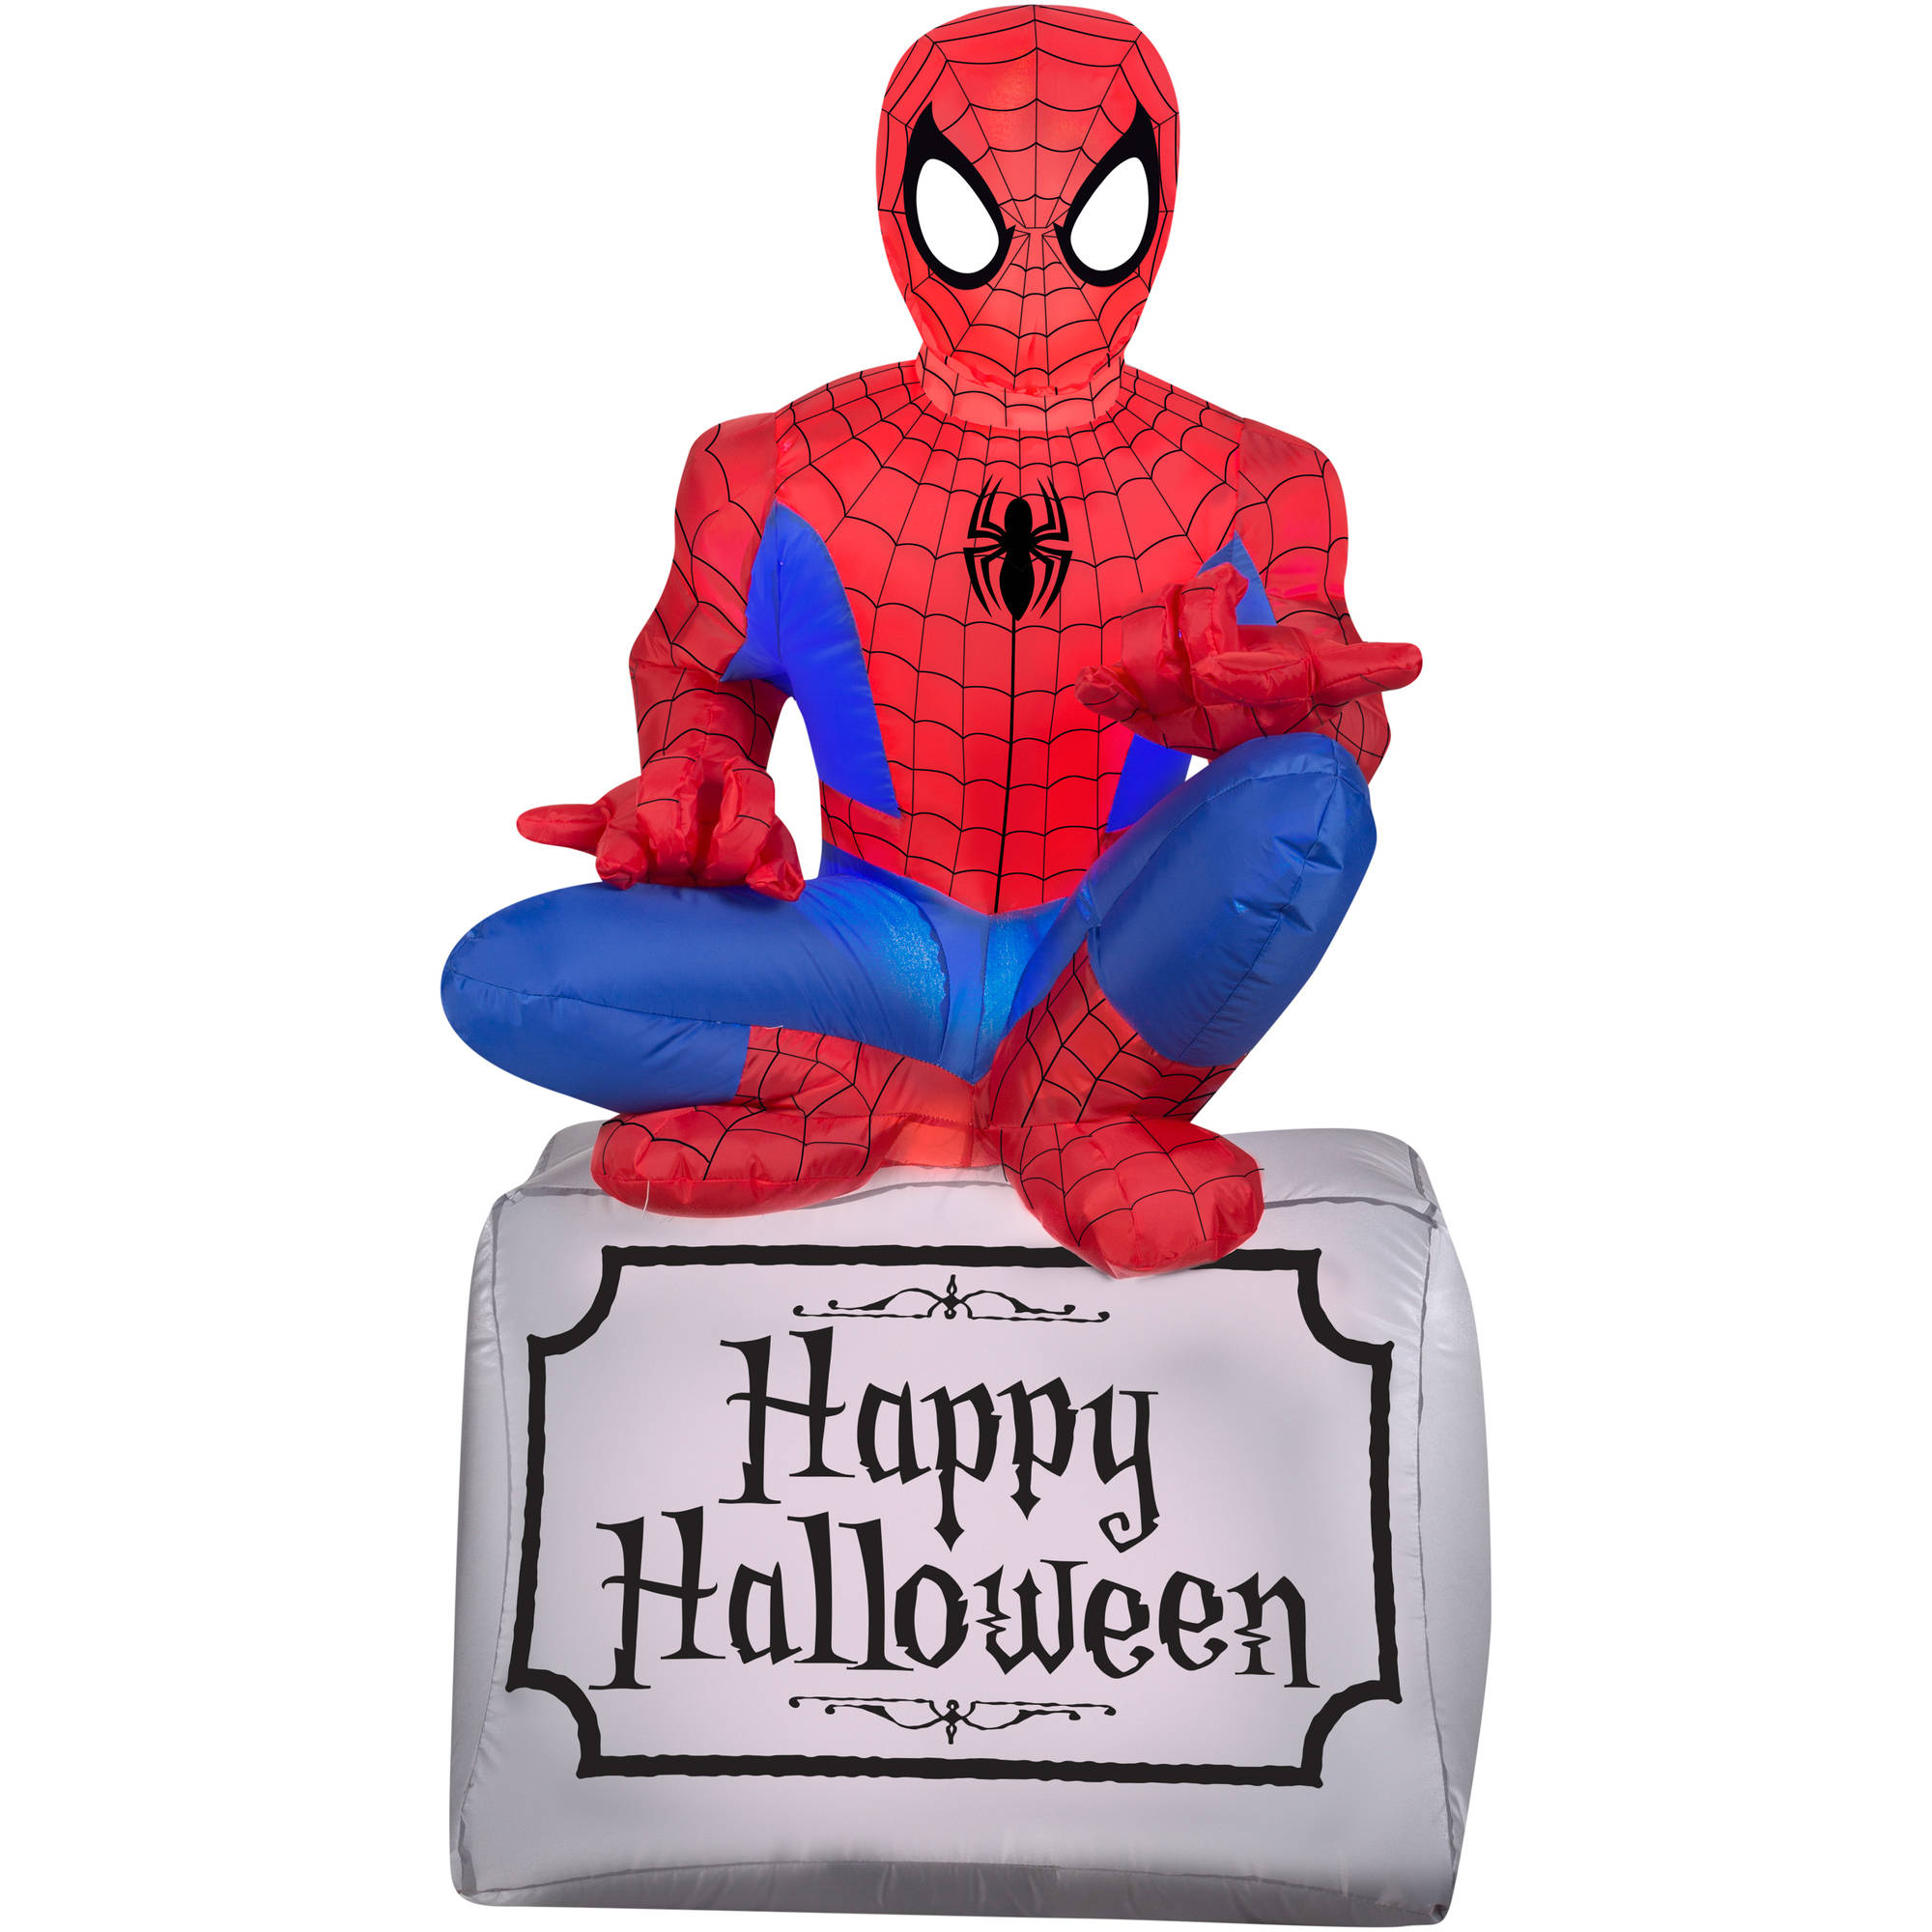 GEMMY AIRBLOWN INFLATABLE 3.5' x 2' SPIDER-MAN ON TOMBSTONE